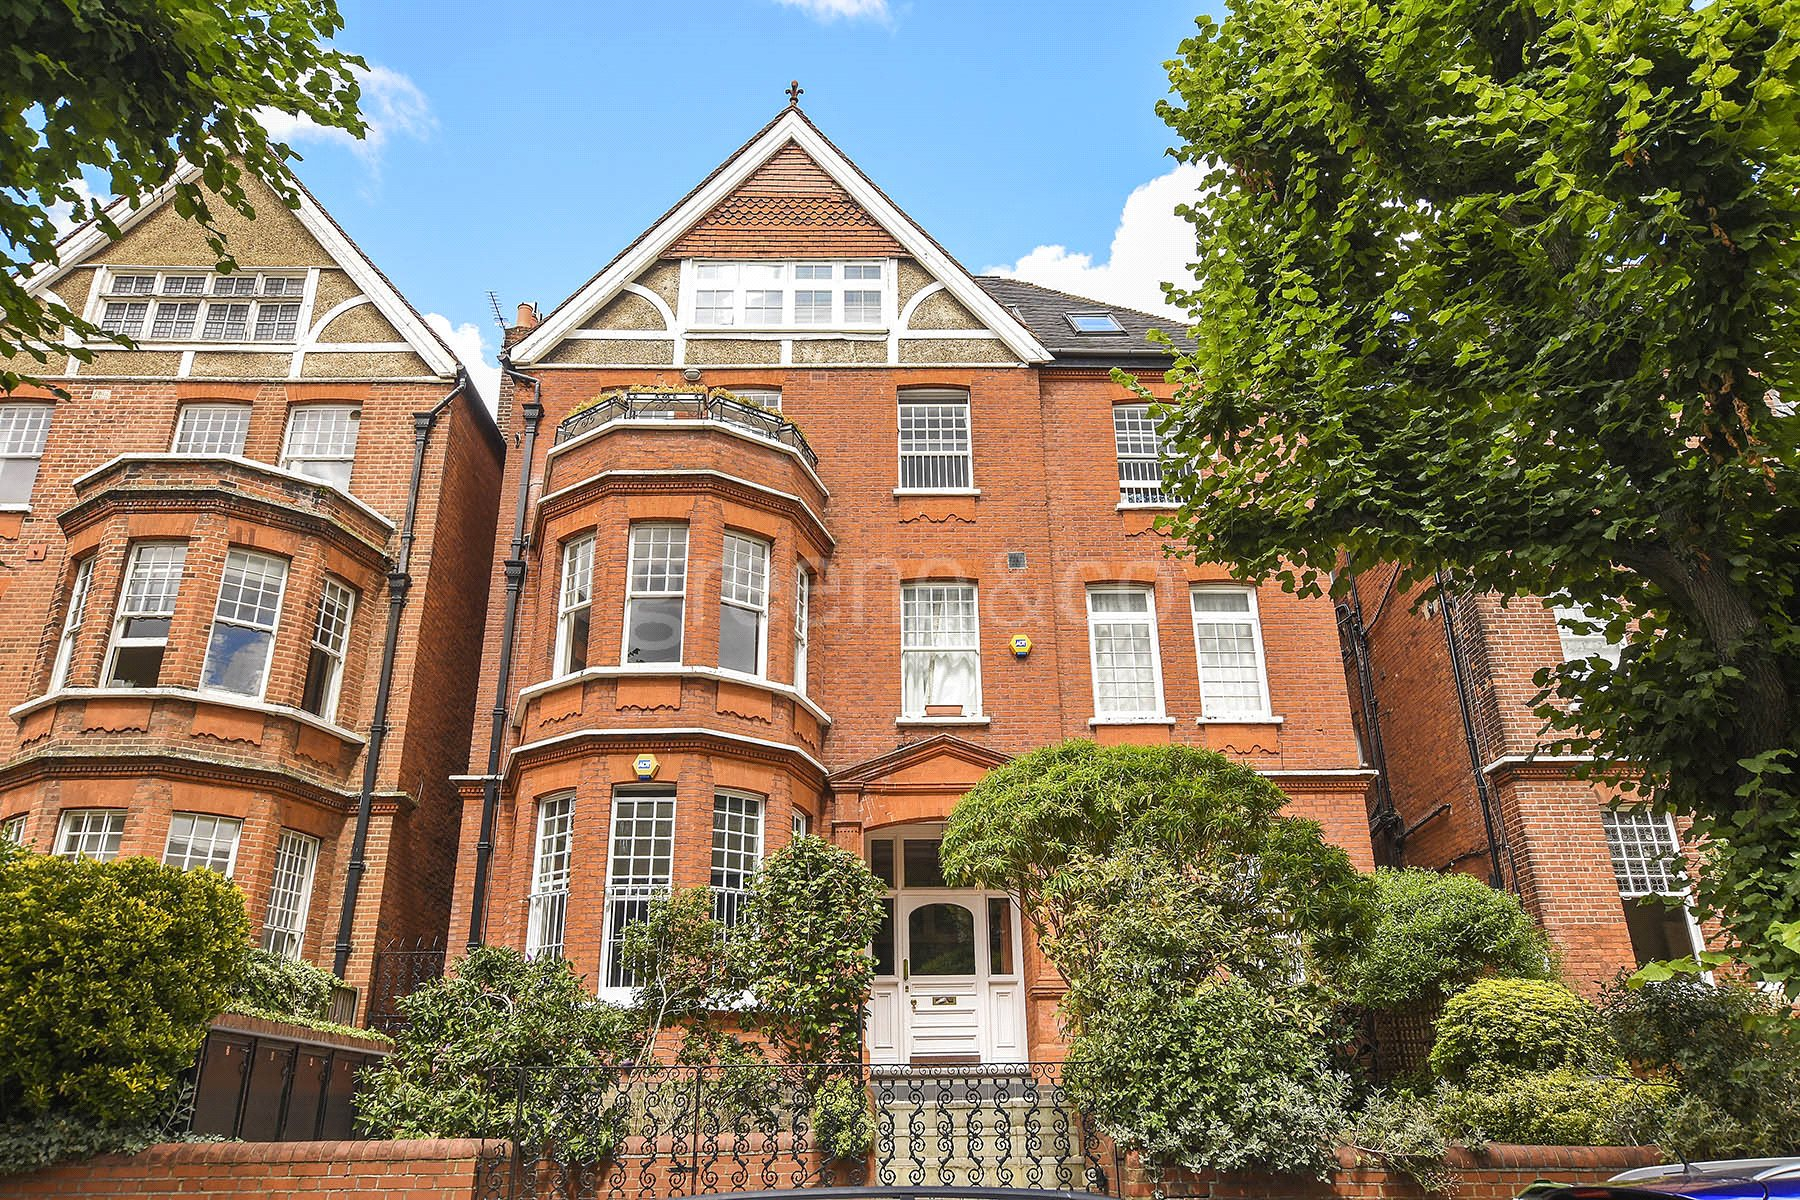 3 Bedrooms Flat for sale in Wedderburn Road, Hampstead, London, NW3